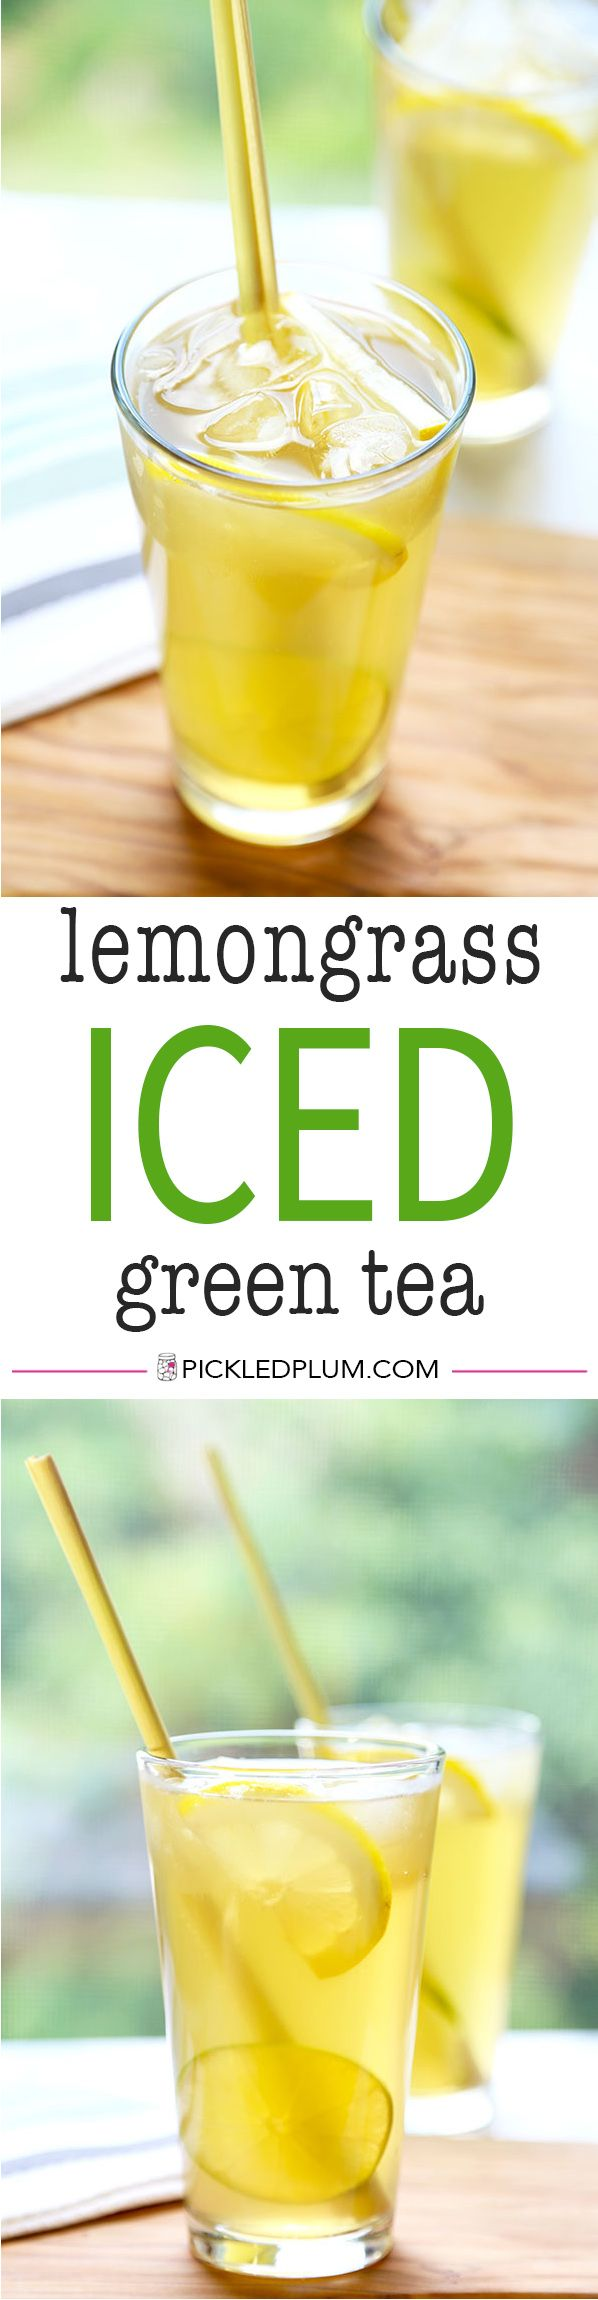 Lemongrass Iced Green Tea - Launch your summer iced tea to next-level freshness with this super-simple Lemongrass Iced Green Tea Recipe. Crisp, citrusy, ice-cold and ready in no time! Recipe, drinks, tea, healthy, beverage | pickledplum.com